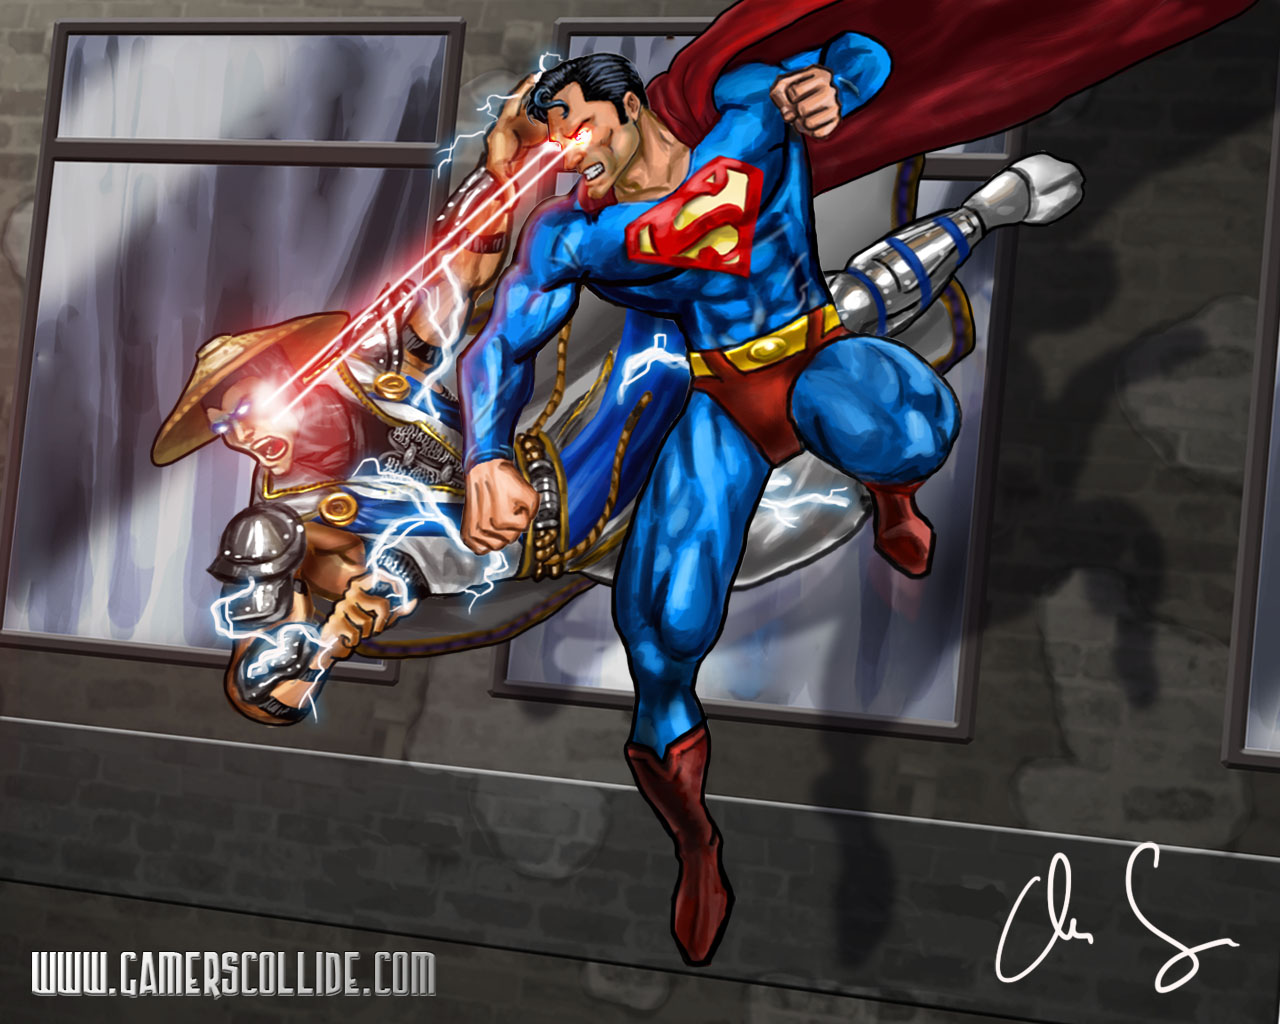 Superman vs Raiden drawing   Forums   Mortal Kombat X 1280x1024